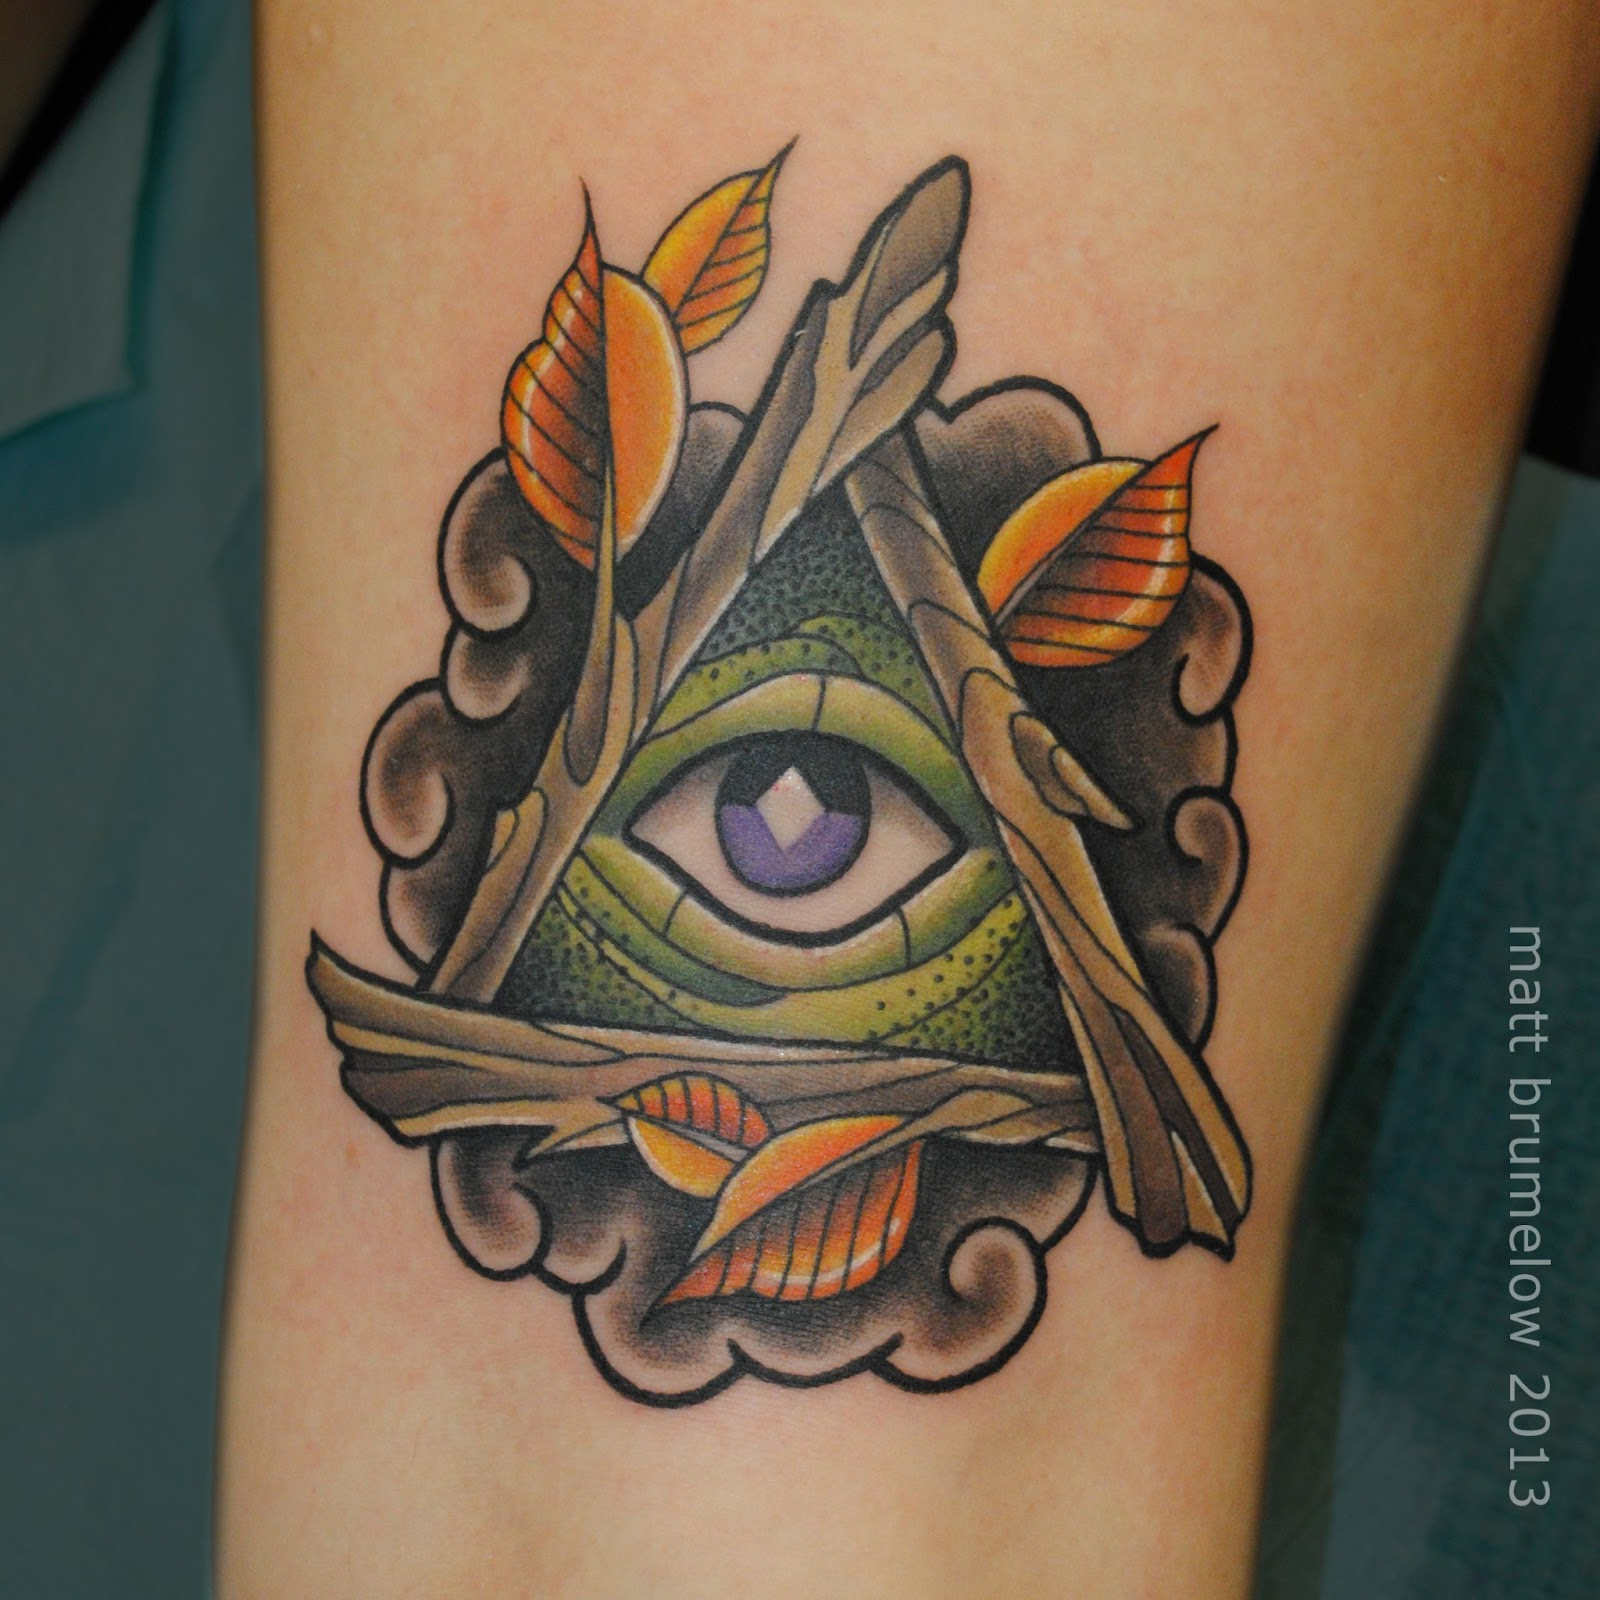 All Seeing Eye Tattoo: Art And Ink: PORTFOLIO